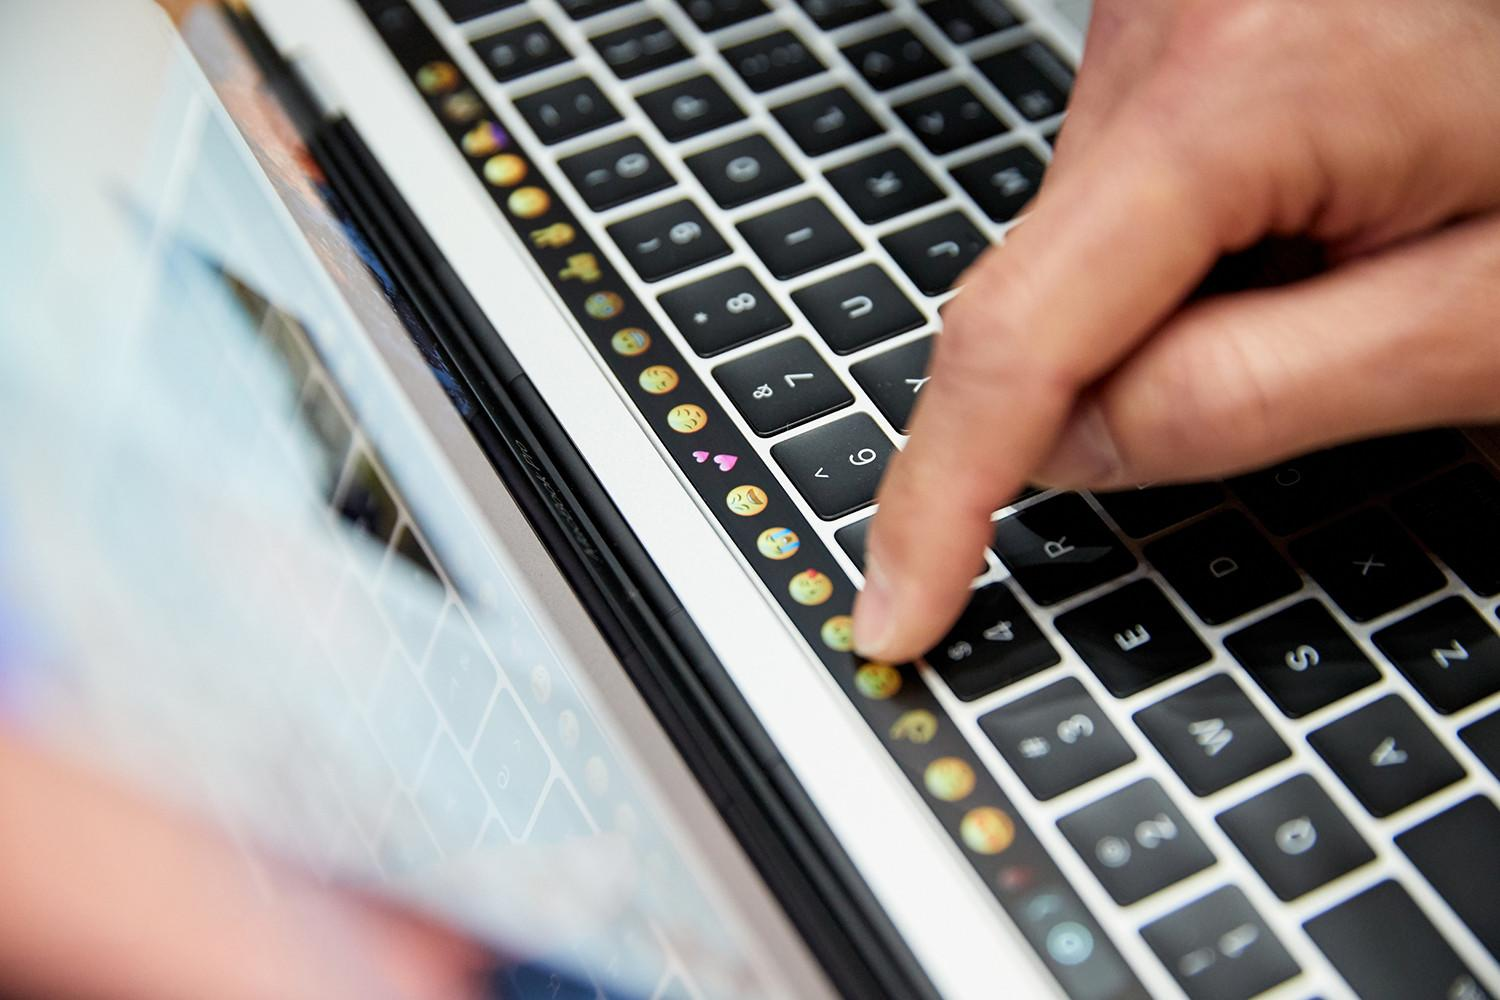 The Touch Bar is only the beginning of Apple's grand designs for the laptop keyboard